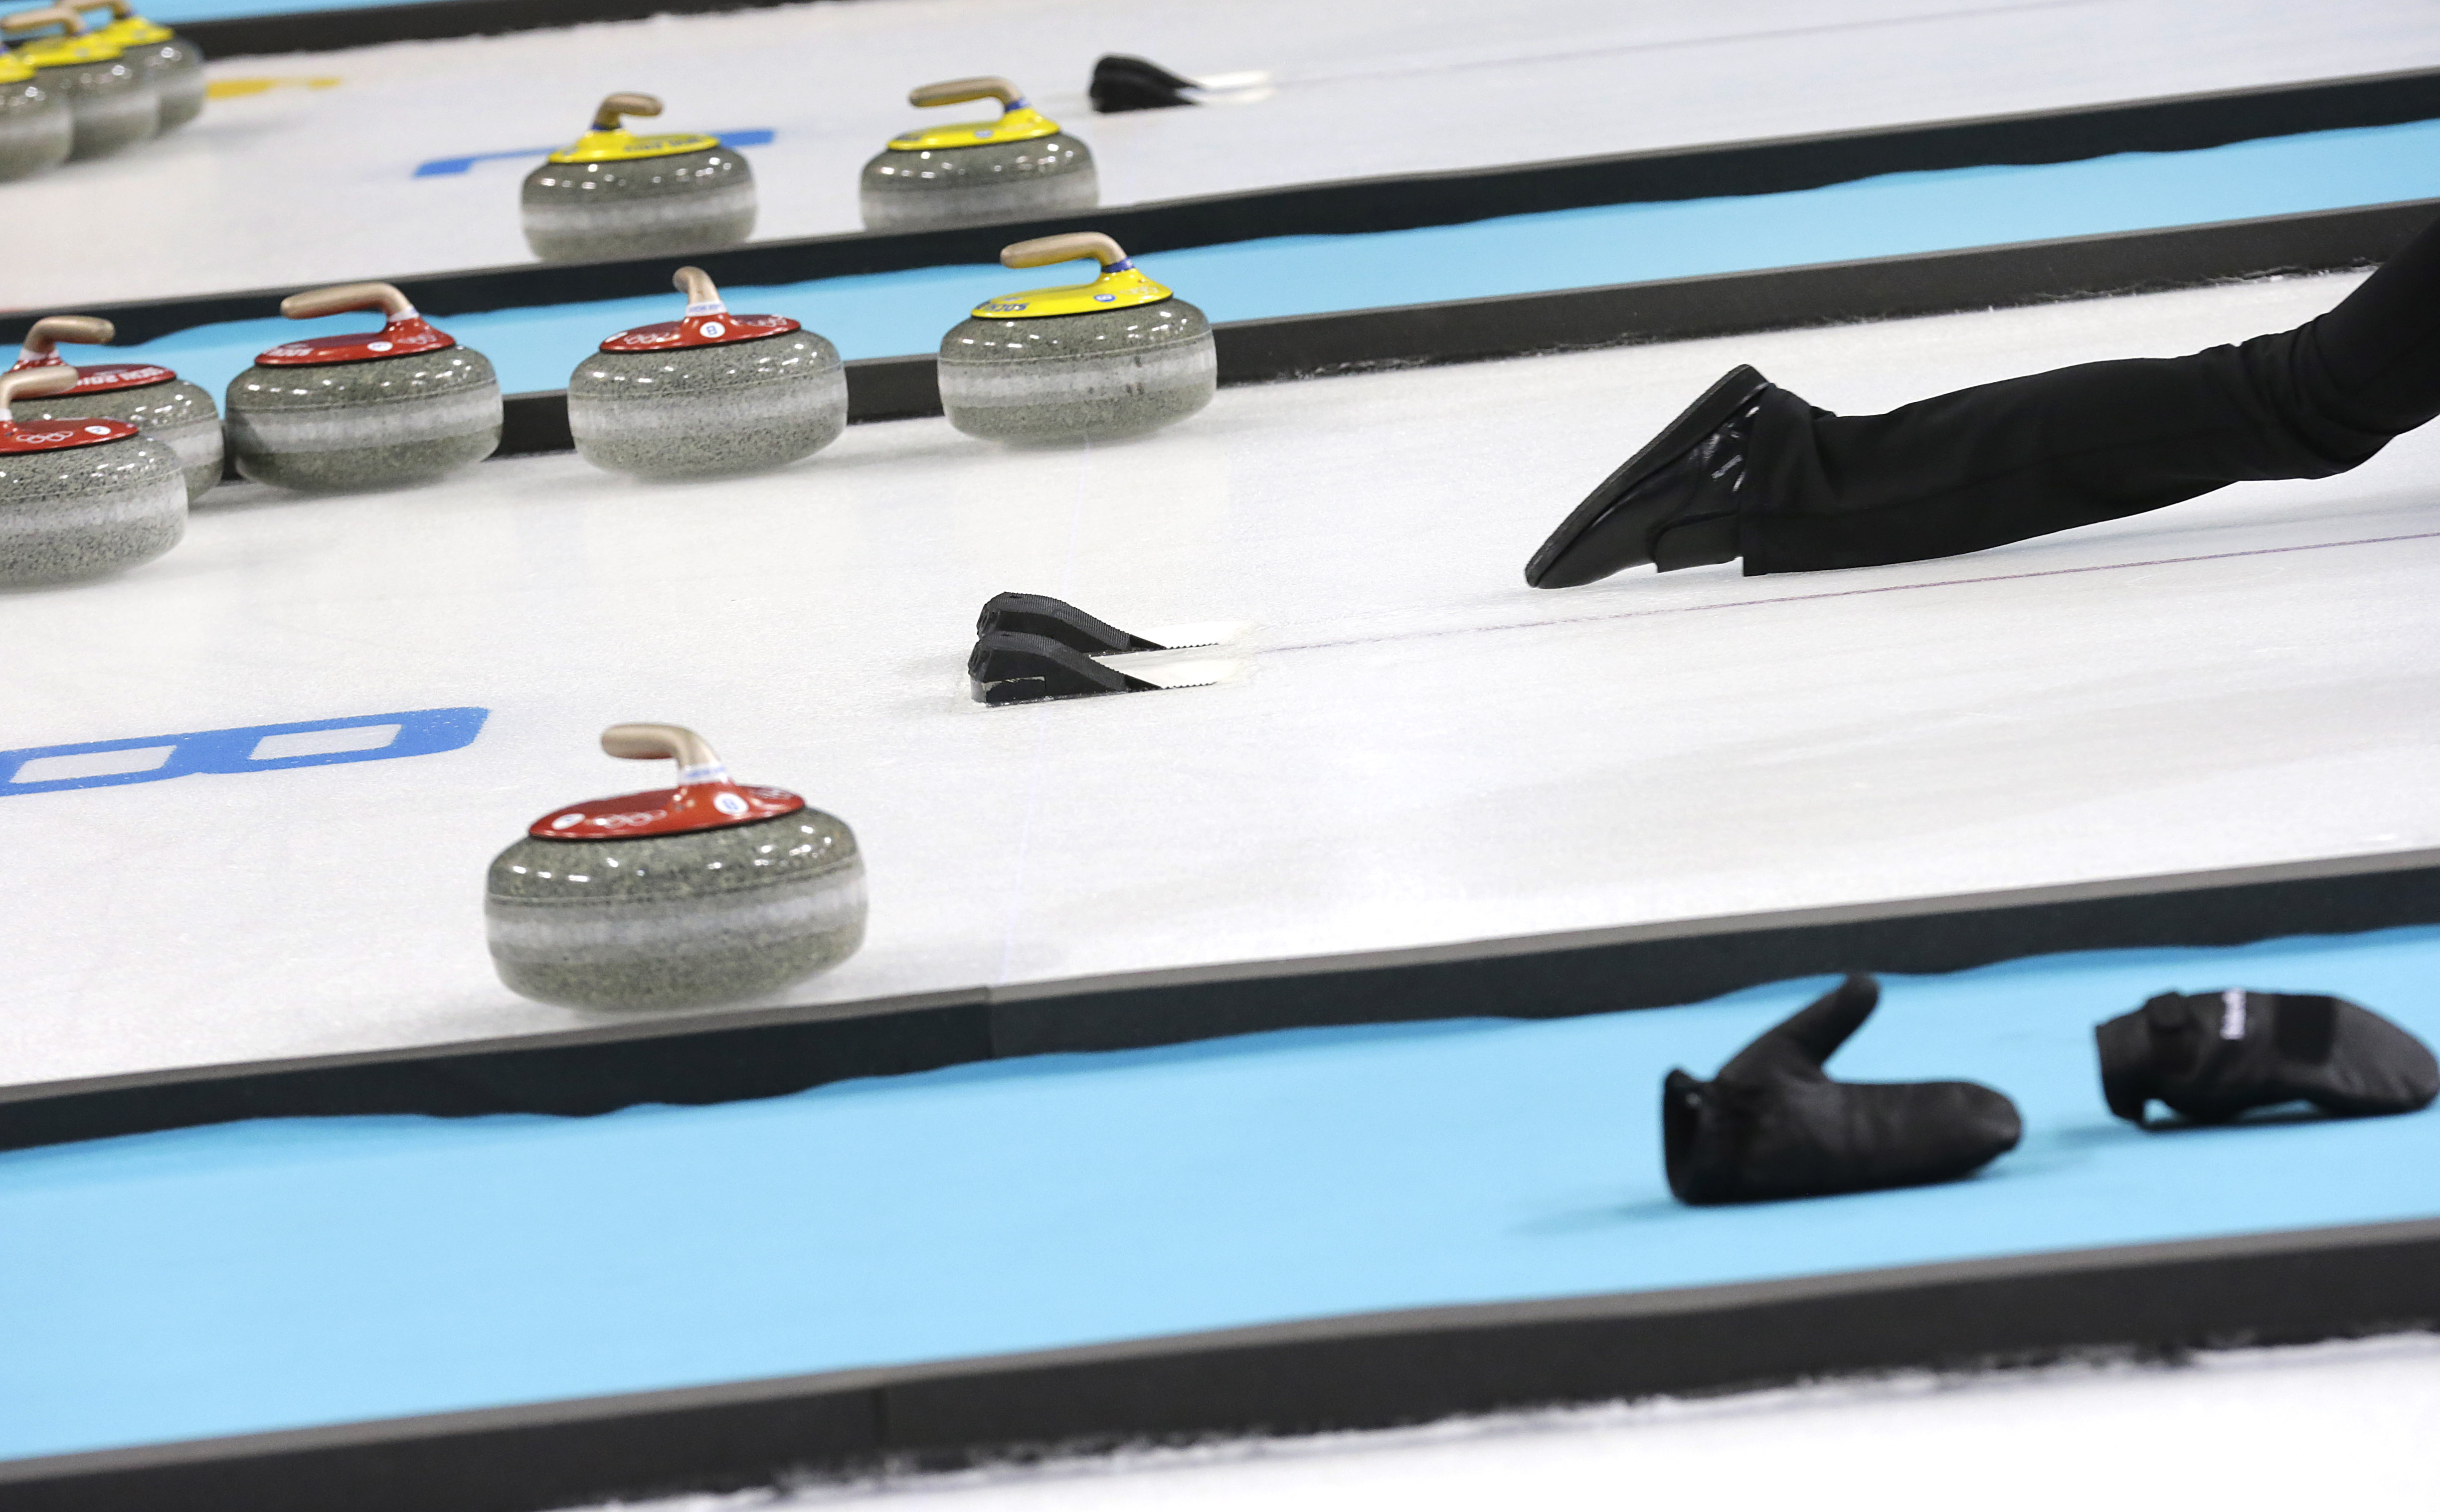 Denmark's Helle Simonsen slides off the hack as she delivers the rock during the first day of training at the 2014 Winter Olympics, Saturday, Feb. 8, 2014, in Sochi, Russia. (AP Photo/Wong Maye-E)